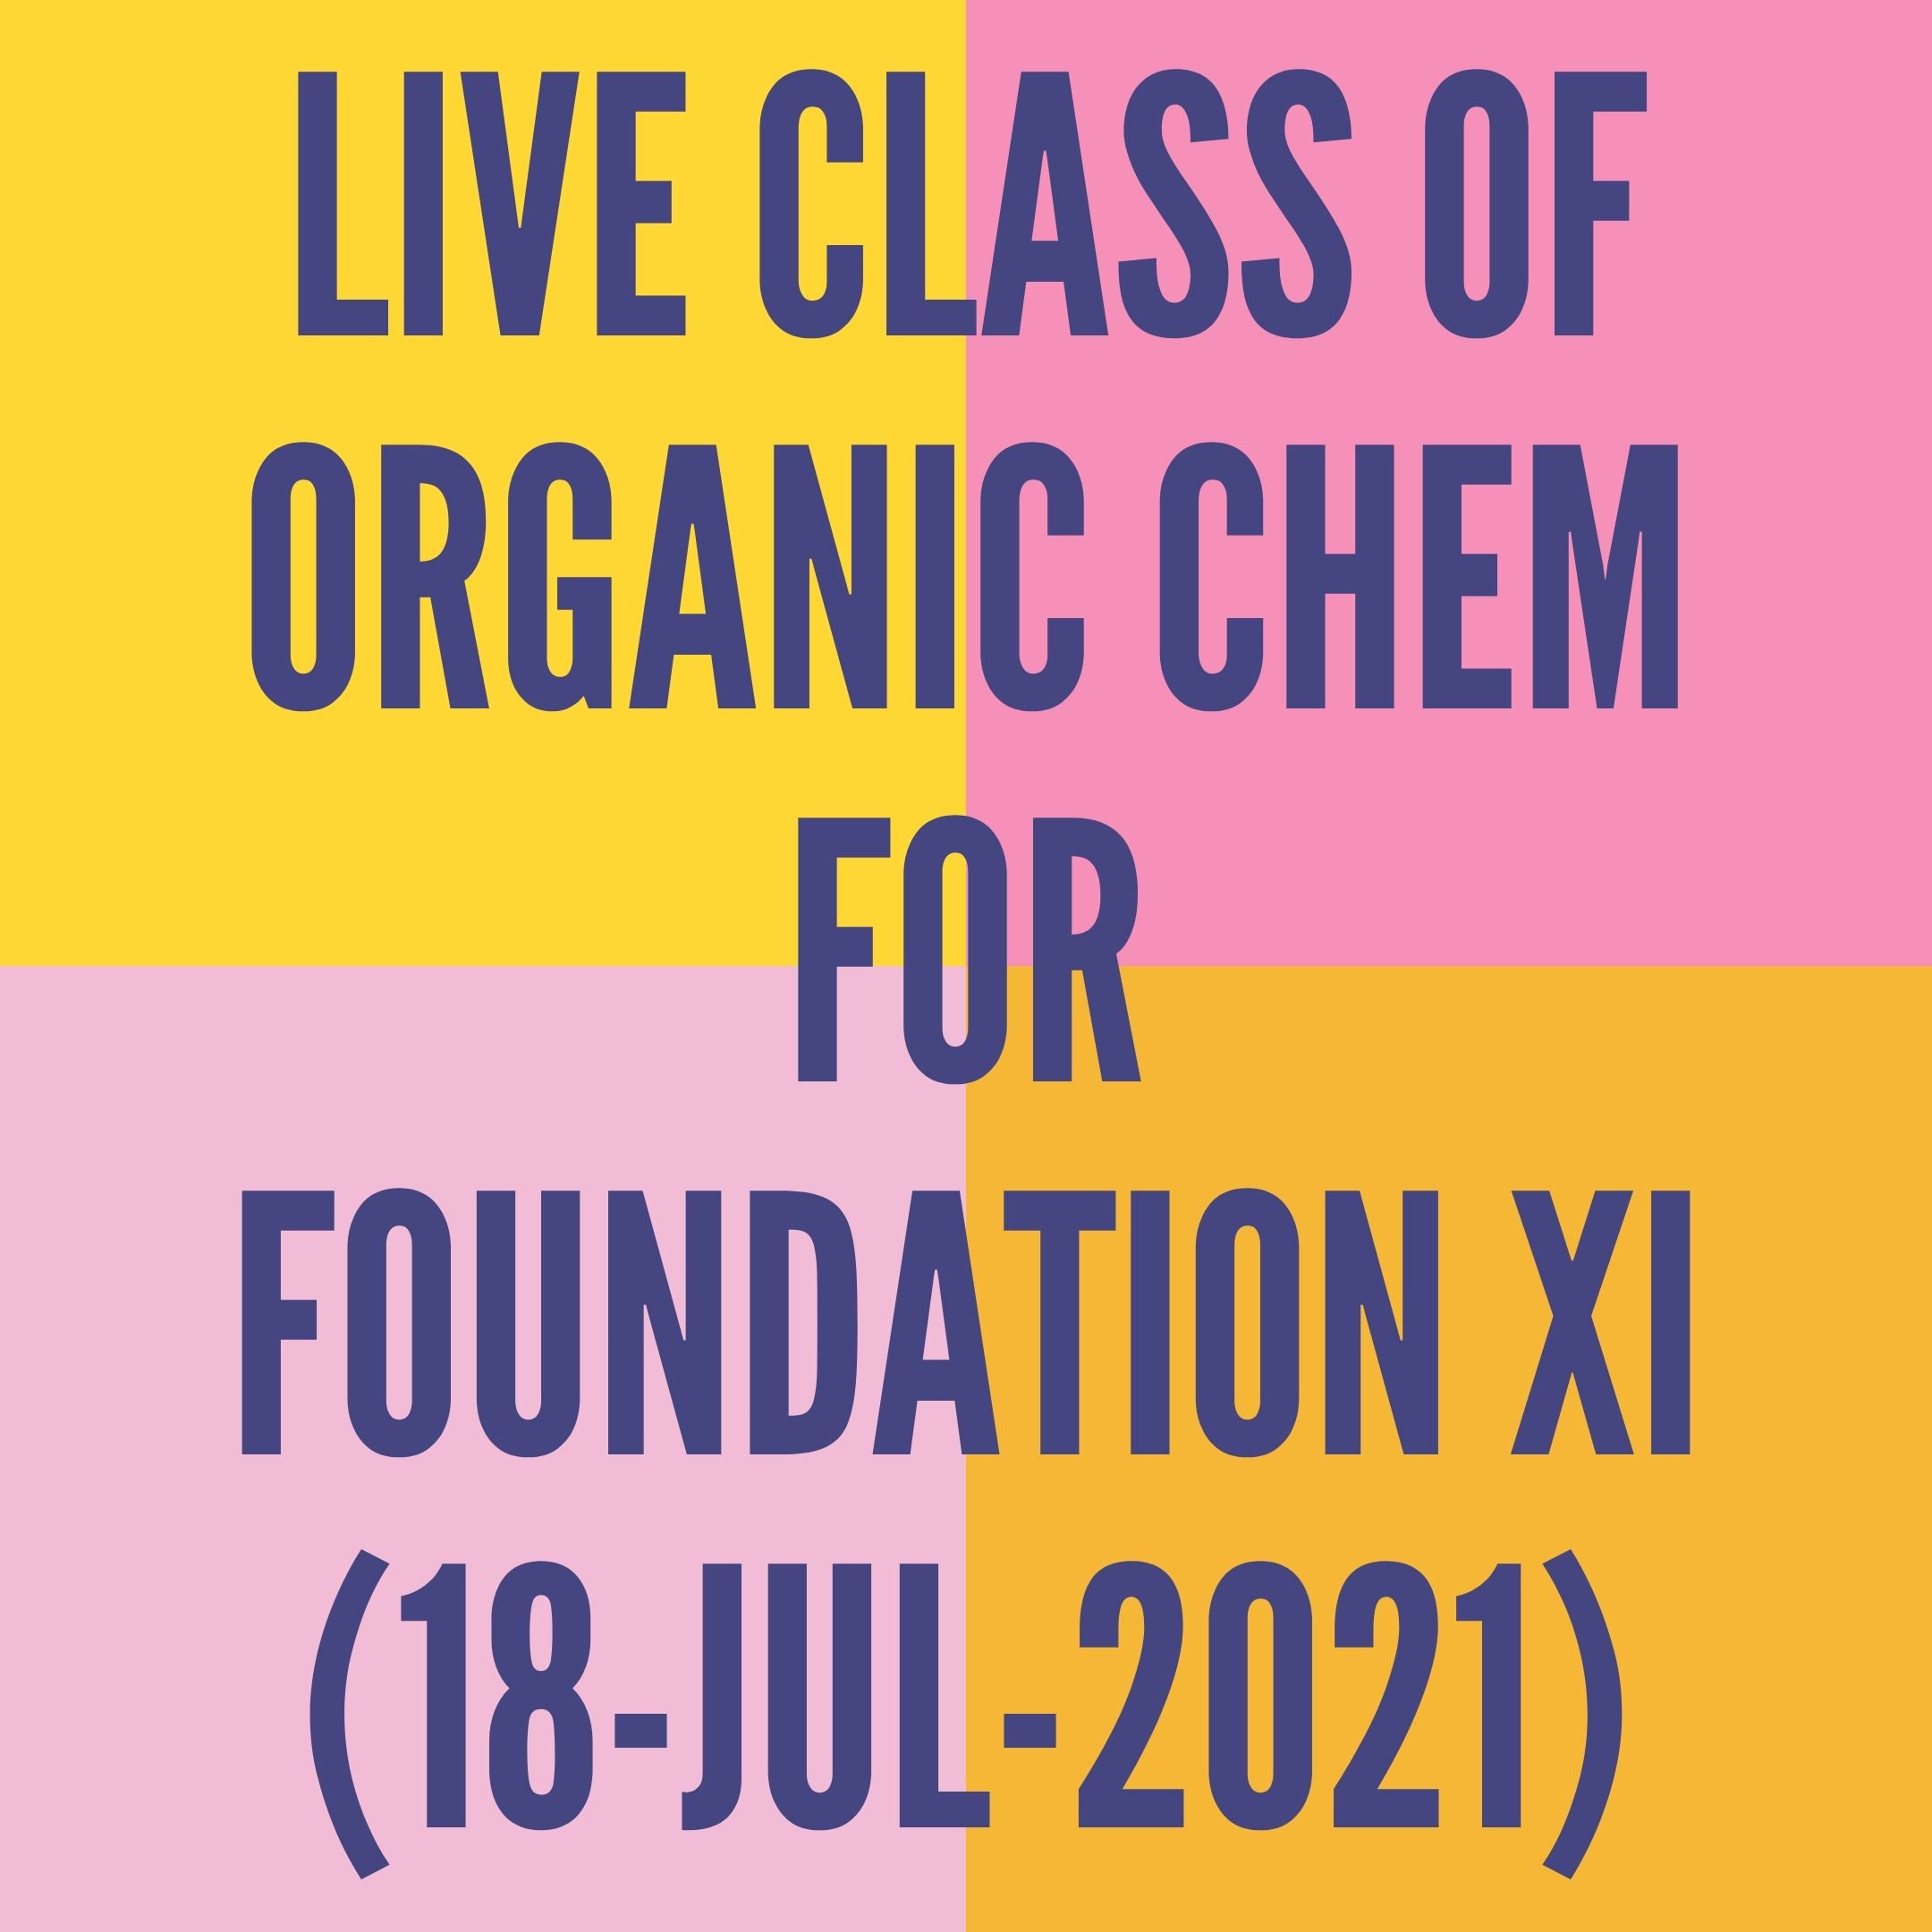 LIVE CLASS OF ORGANIC CHEMISTRY FOR FOUNDATION XI (18-JUL-2021) NOMENCLATURE